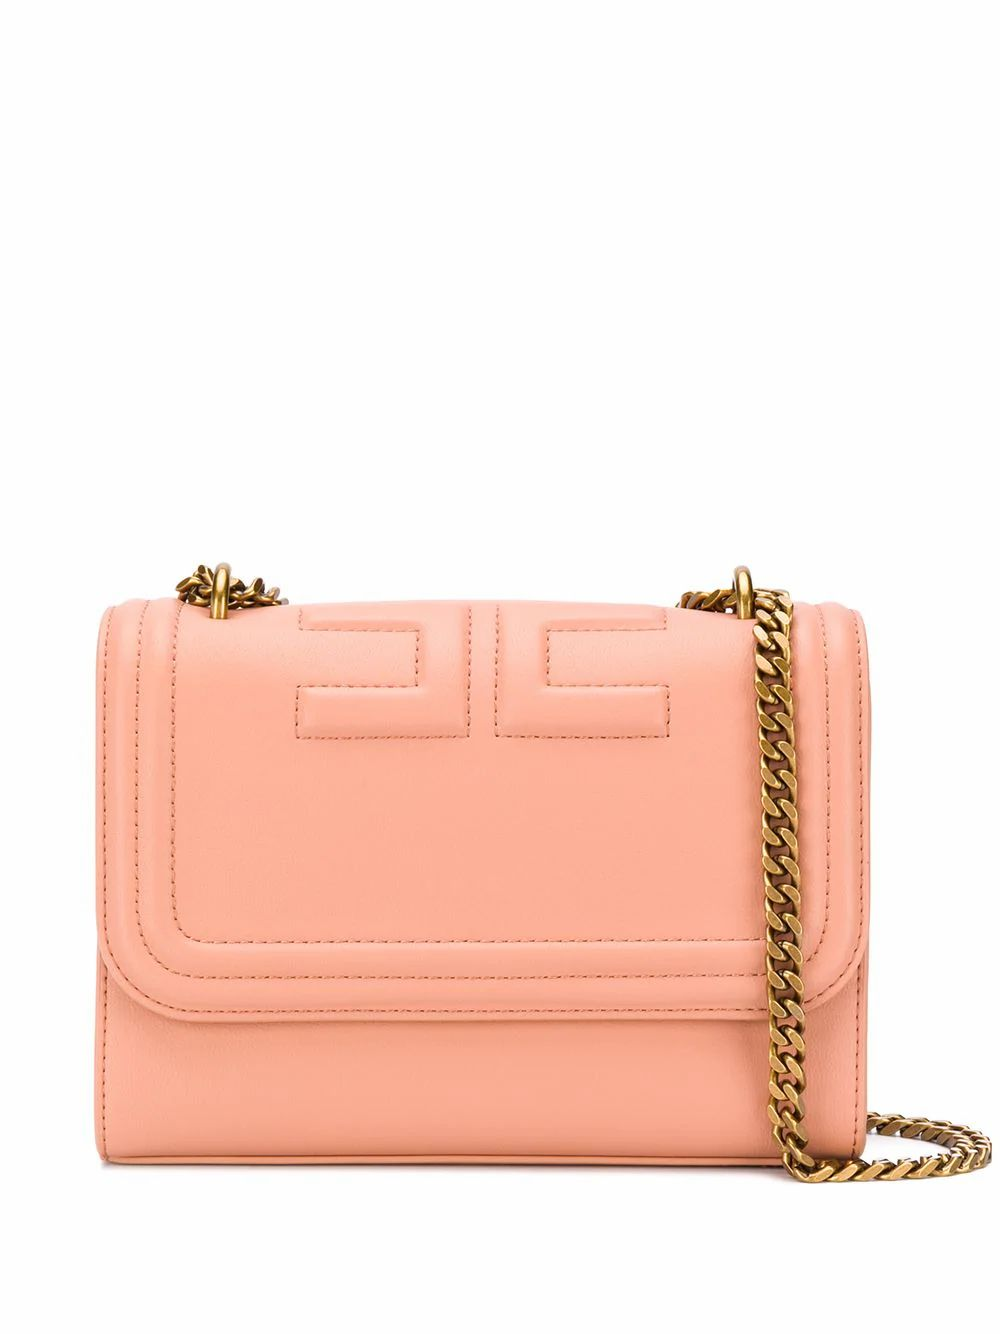 Elisabetta Franchi ELISABETTA FRANCHI WOMEN'S PINK LEATHER SHOULDER BAG